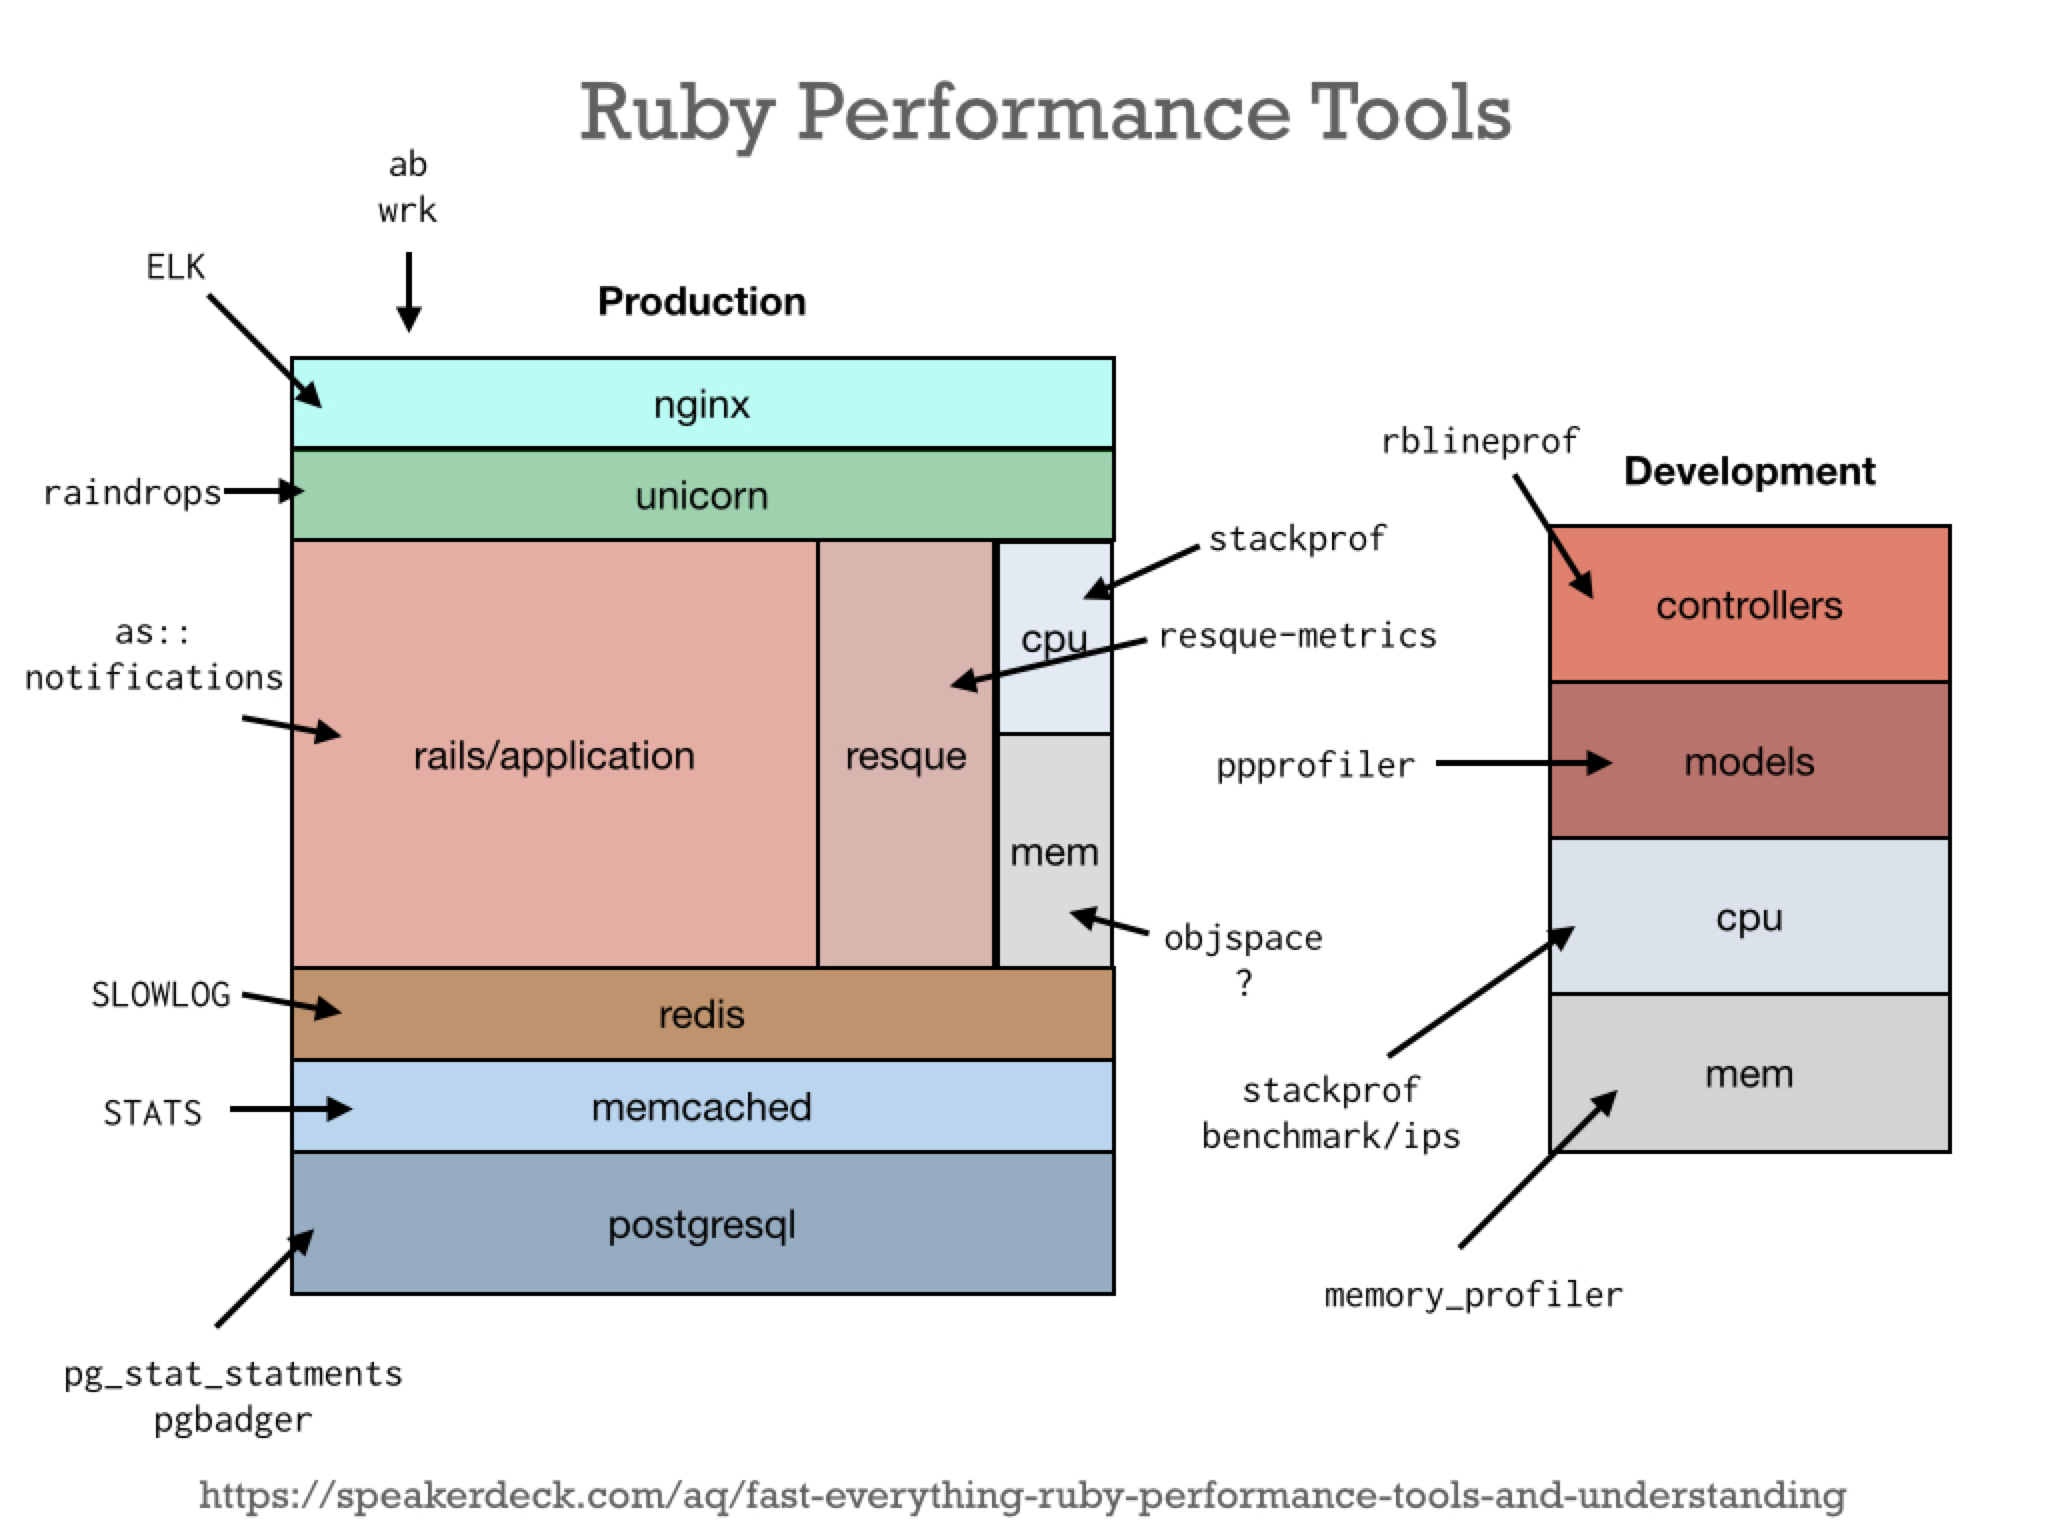 http://quirkey.com/skitch/fast-everything-rubynation.001-20150615-160626.png